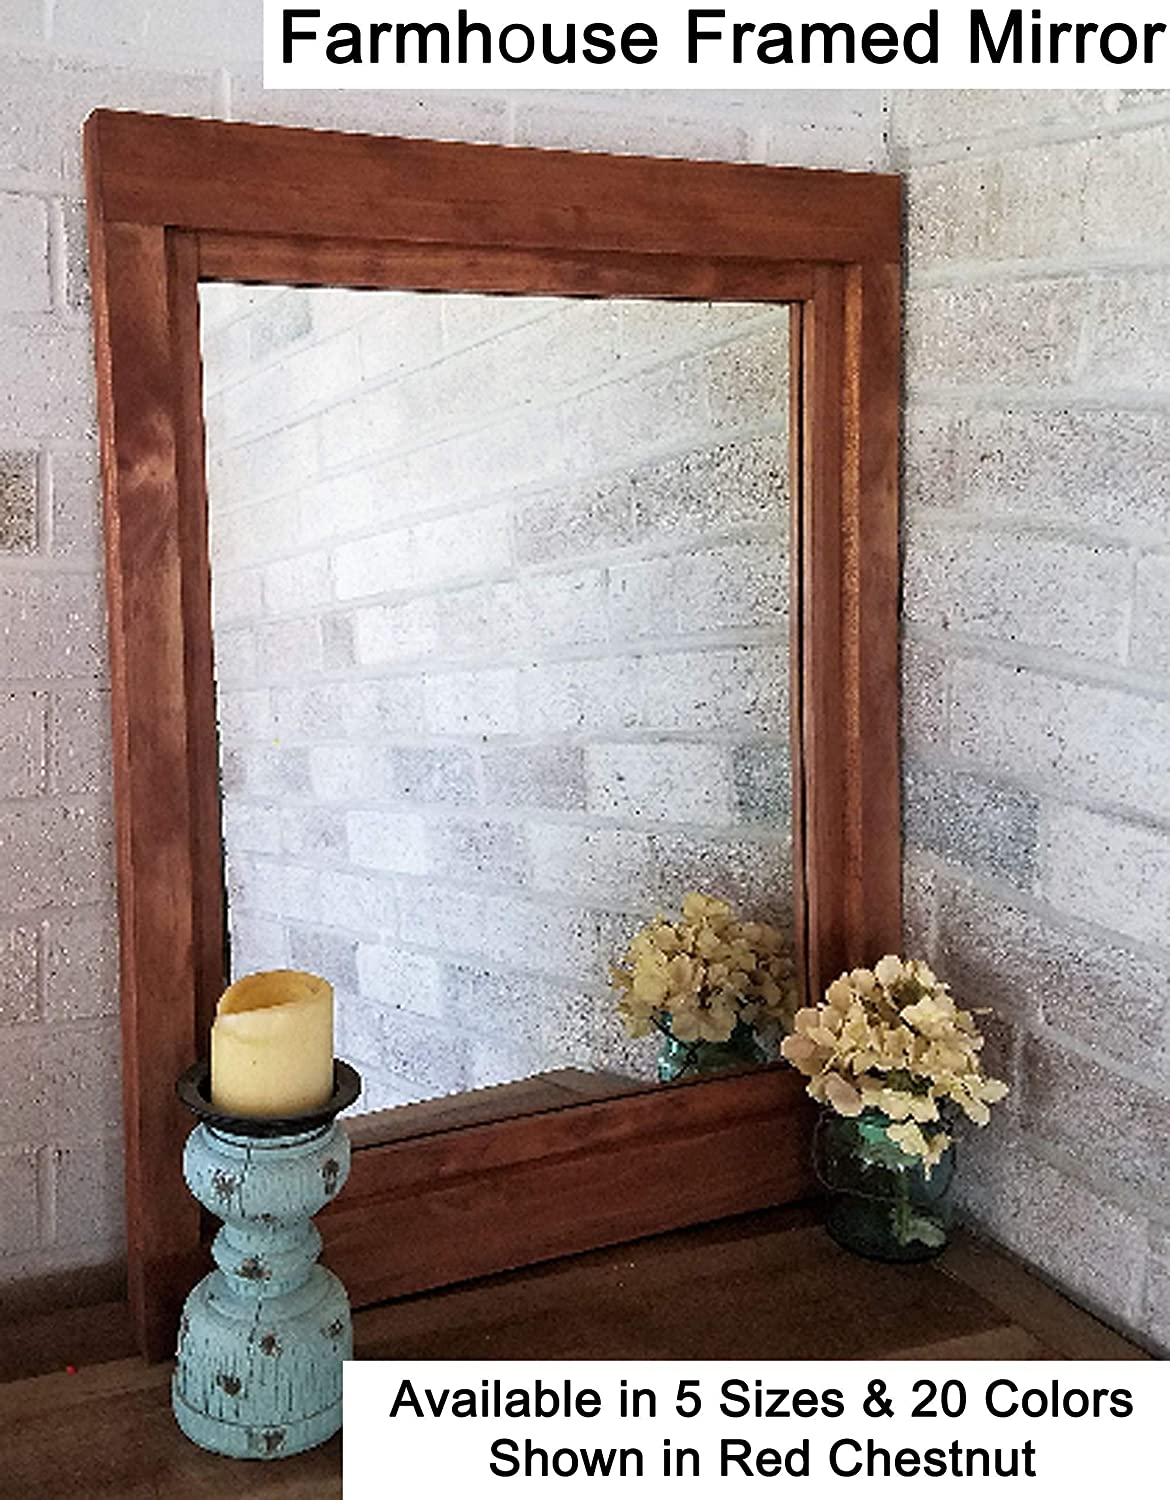 Farmhouse large framed mirror available in 6 sizes and 20 stain colors shown in red chestnut large wall mirror wall mirror decorative rustic home